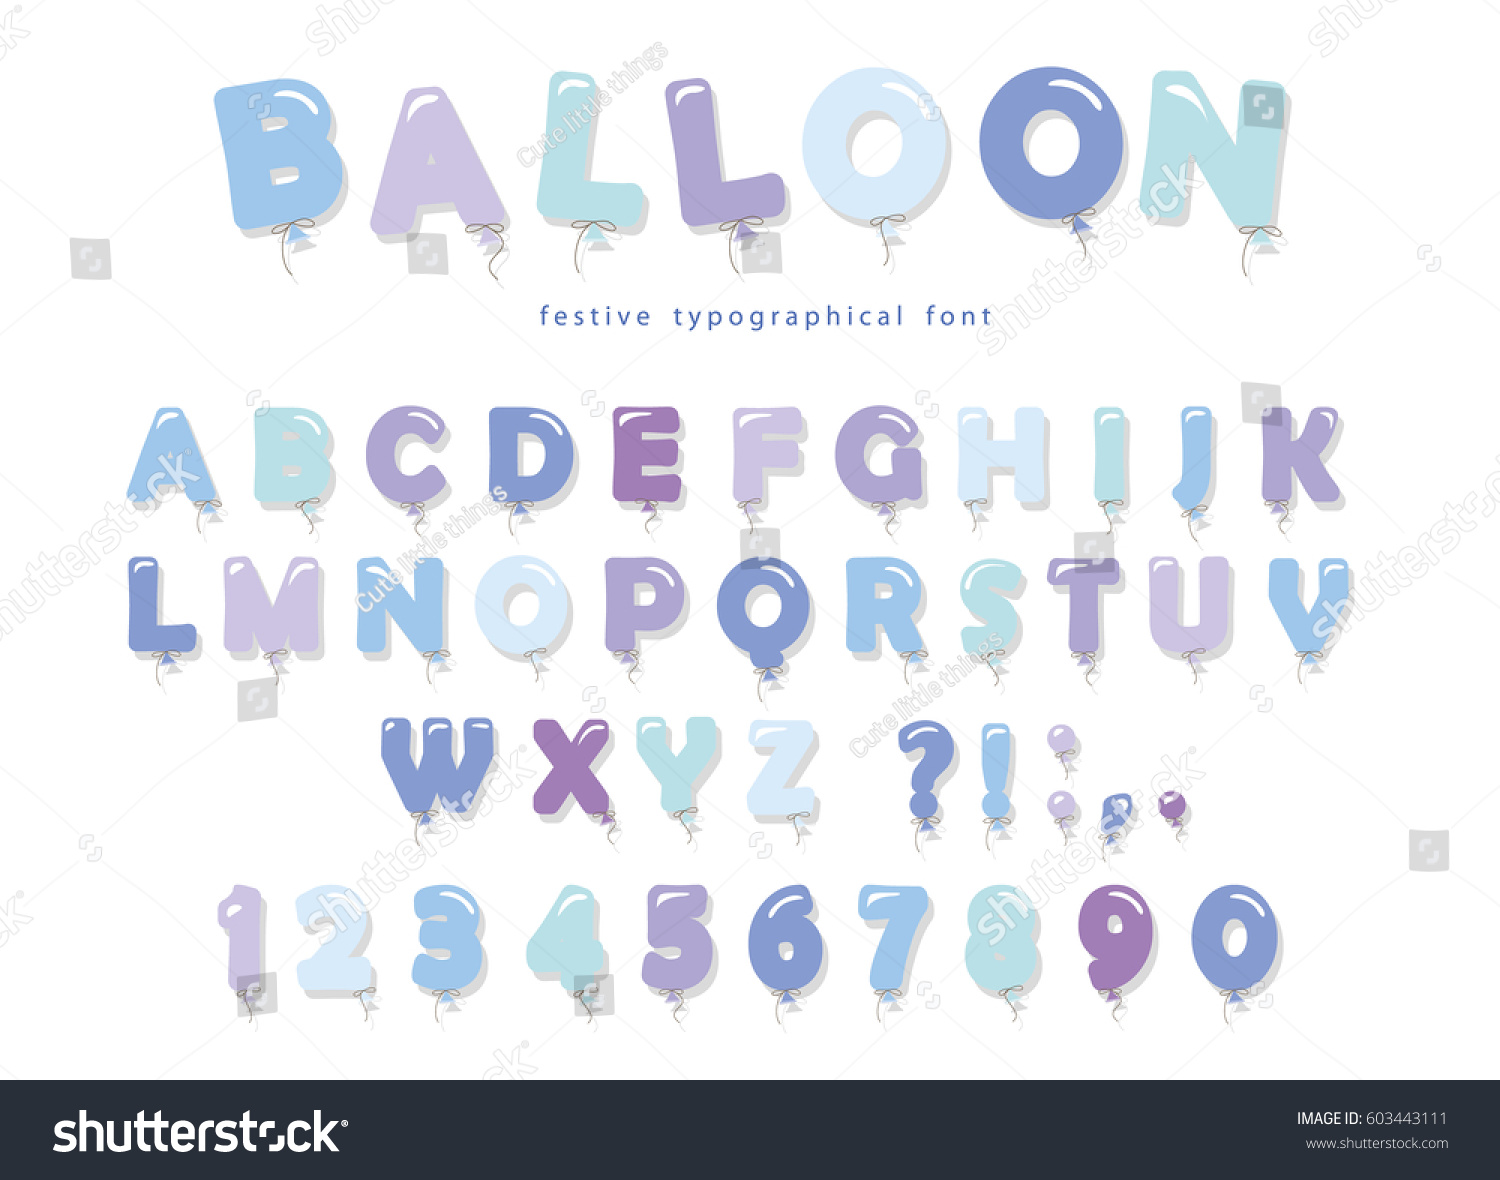 Balloon Blue Font. Cute ABC Letters And Numbers. For Birthday, Boy Baby  Shower